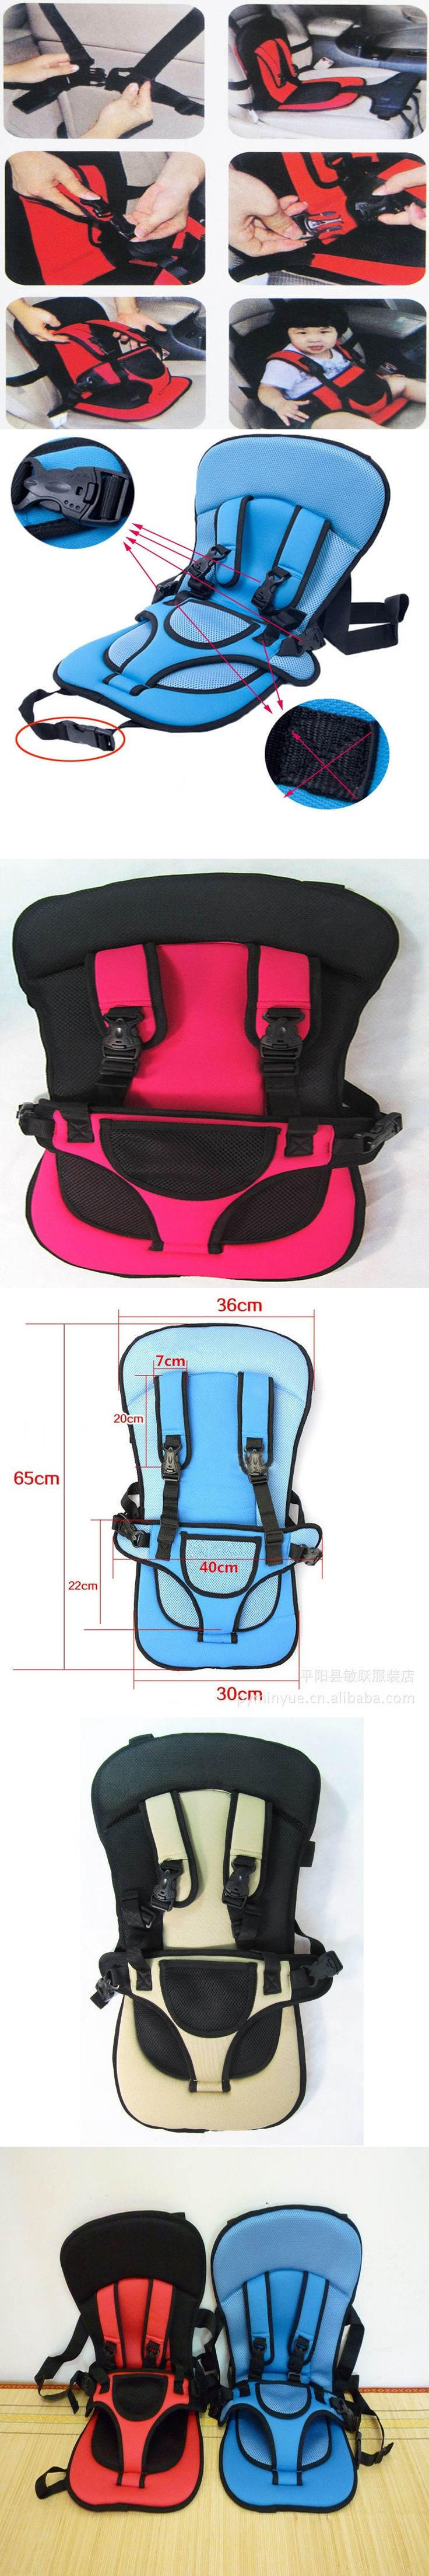 2015 New 0-4 Years Old Baby Portable Car Safety Seat Kids Car Seat Car Chairs For Children Toddlers Car Seat Cover Harness